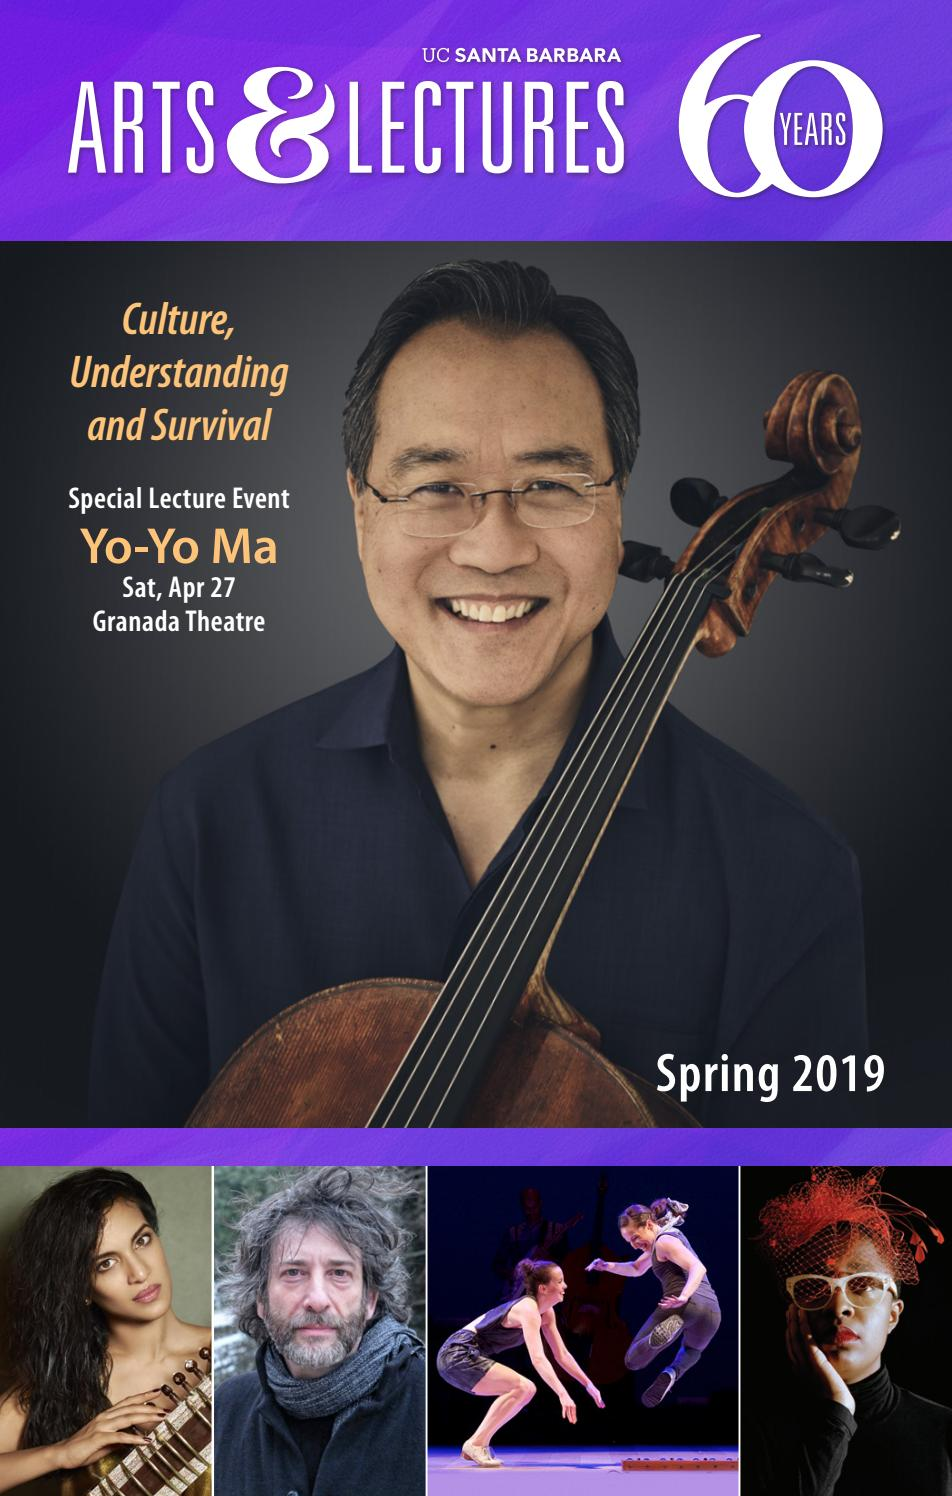 Ucsb Calendar.Ucsb Arts Lectures Spring Calendar 2019 By Ucsb Arts Lectures